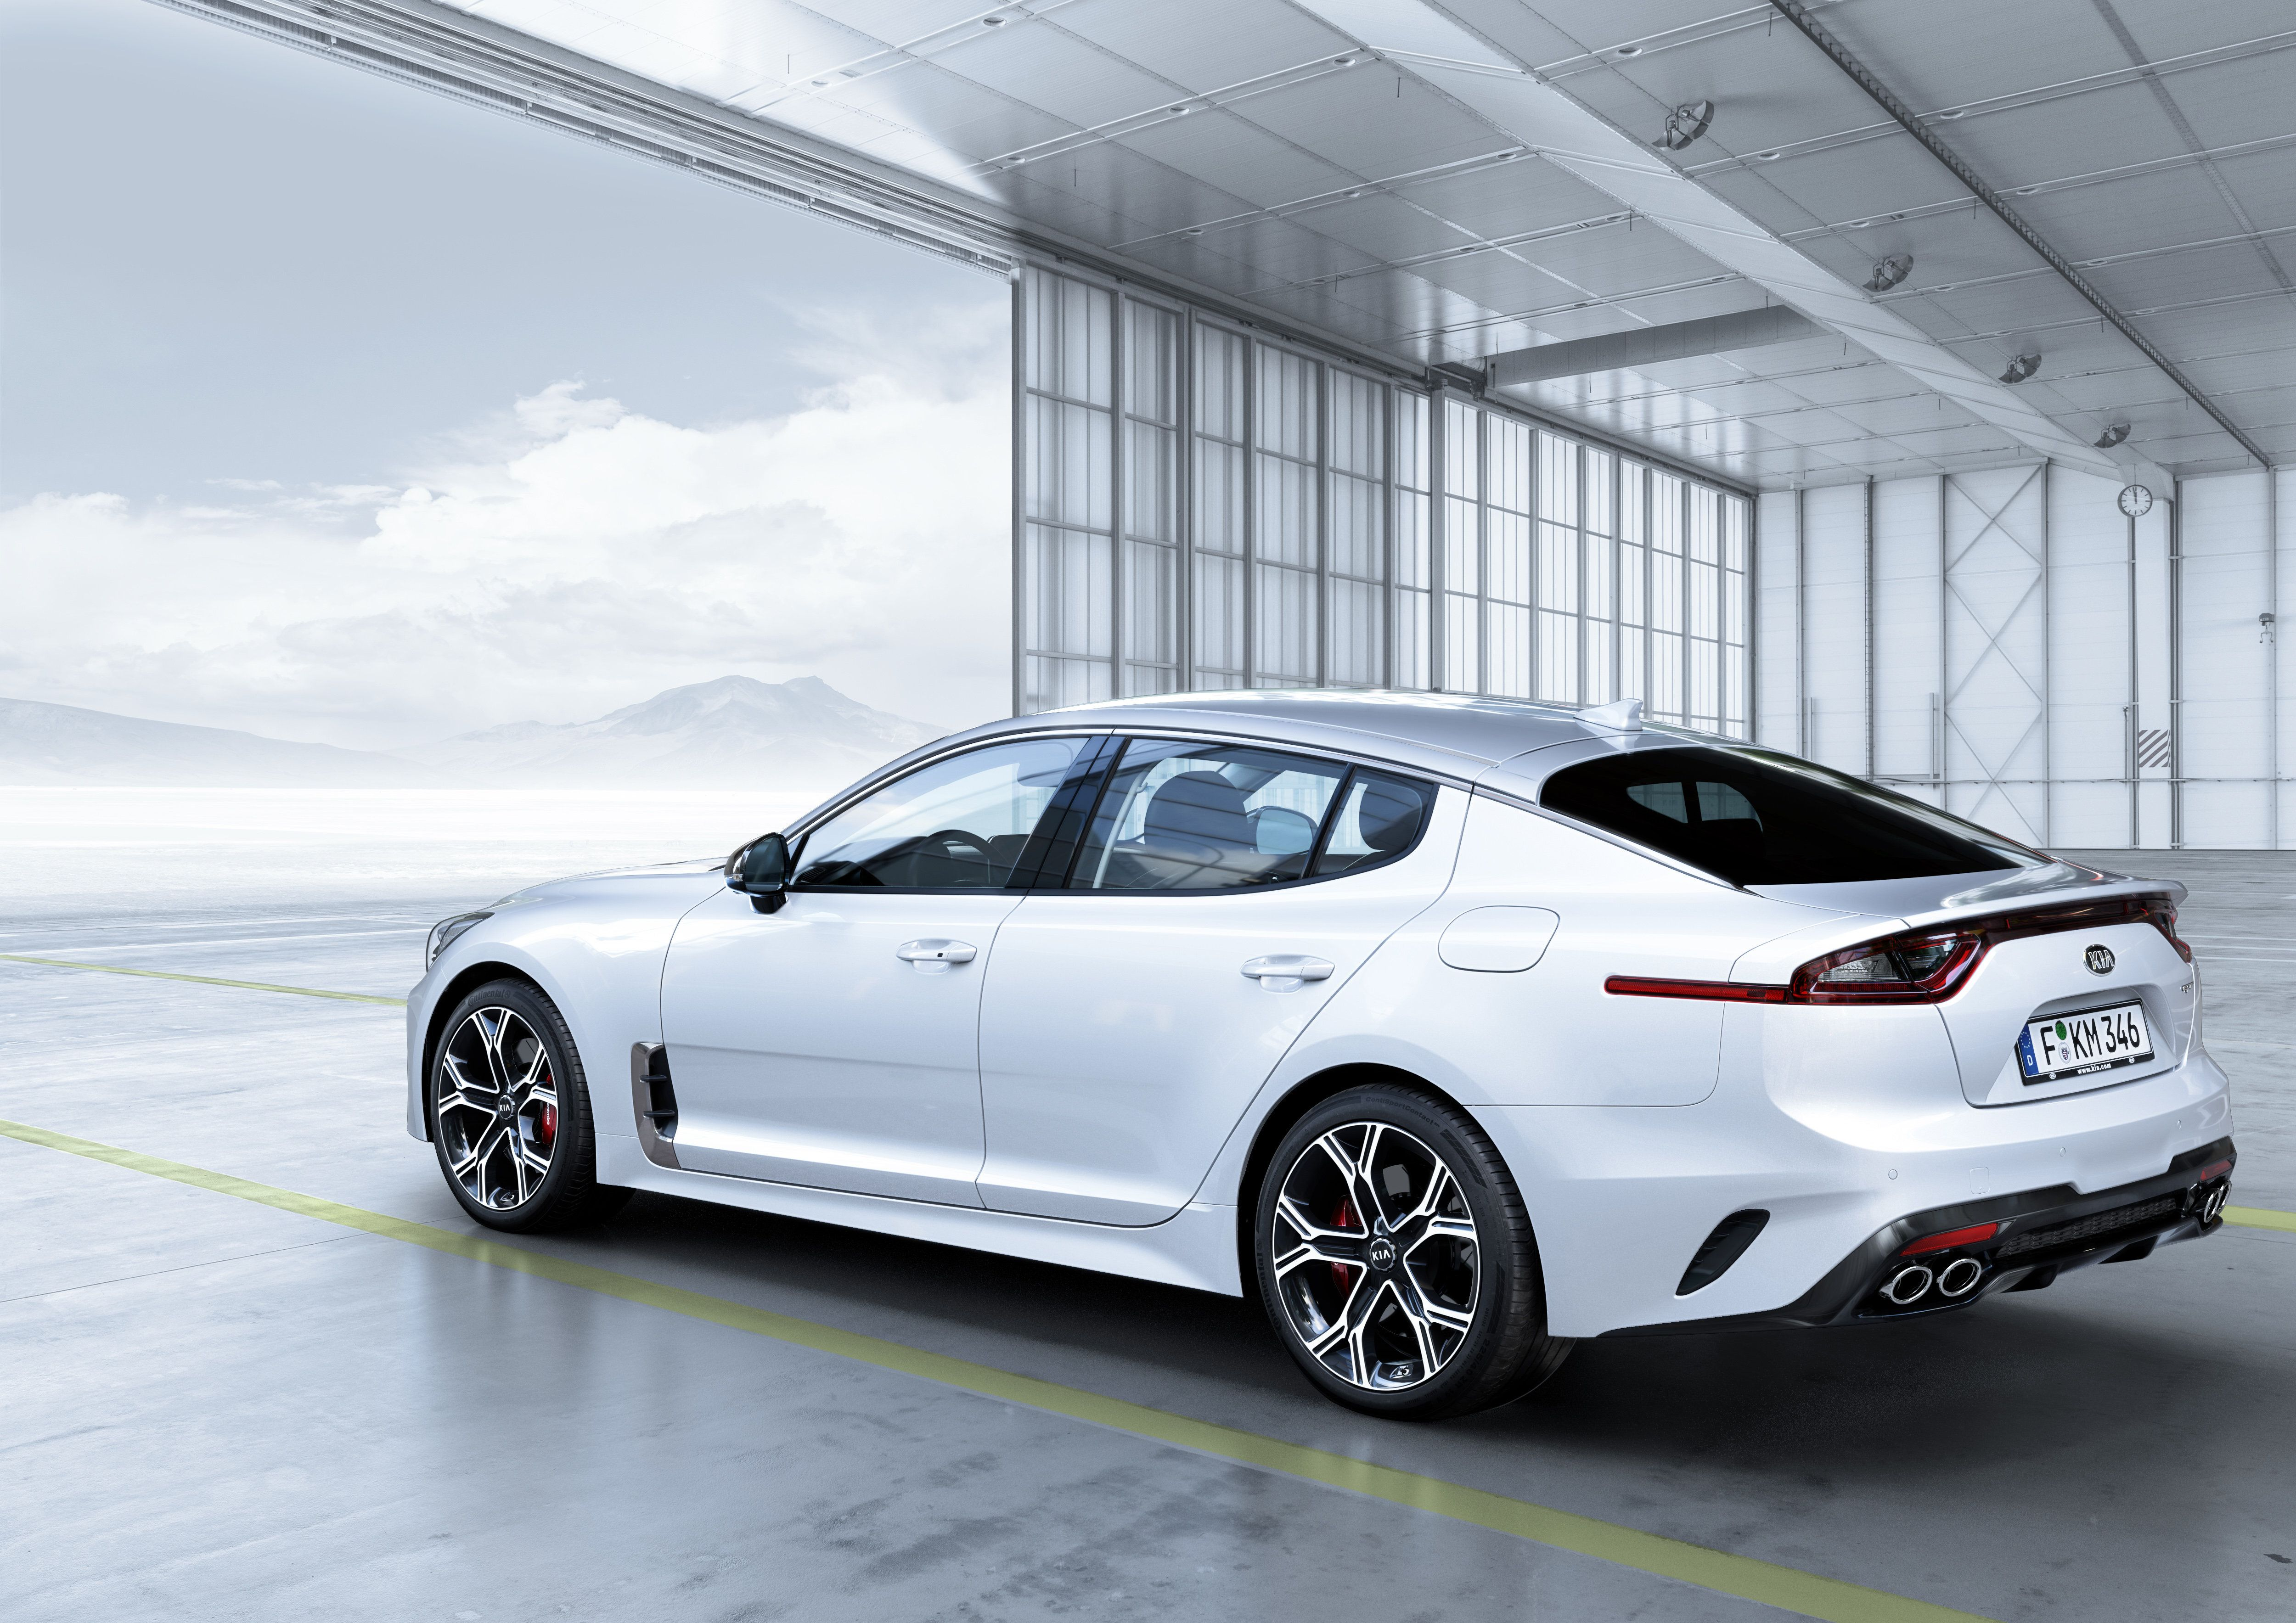 The Kia Stinger Has Been Unveiled Designed In Frankfurt Developed On The Nurburgring And With Kia S Industry Leadi Kia Stinger Kia Motors America Kia Motors